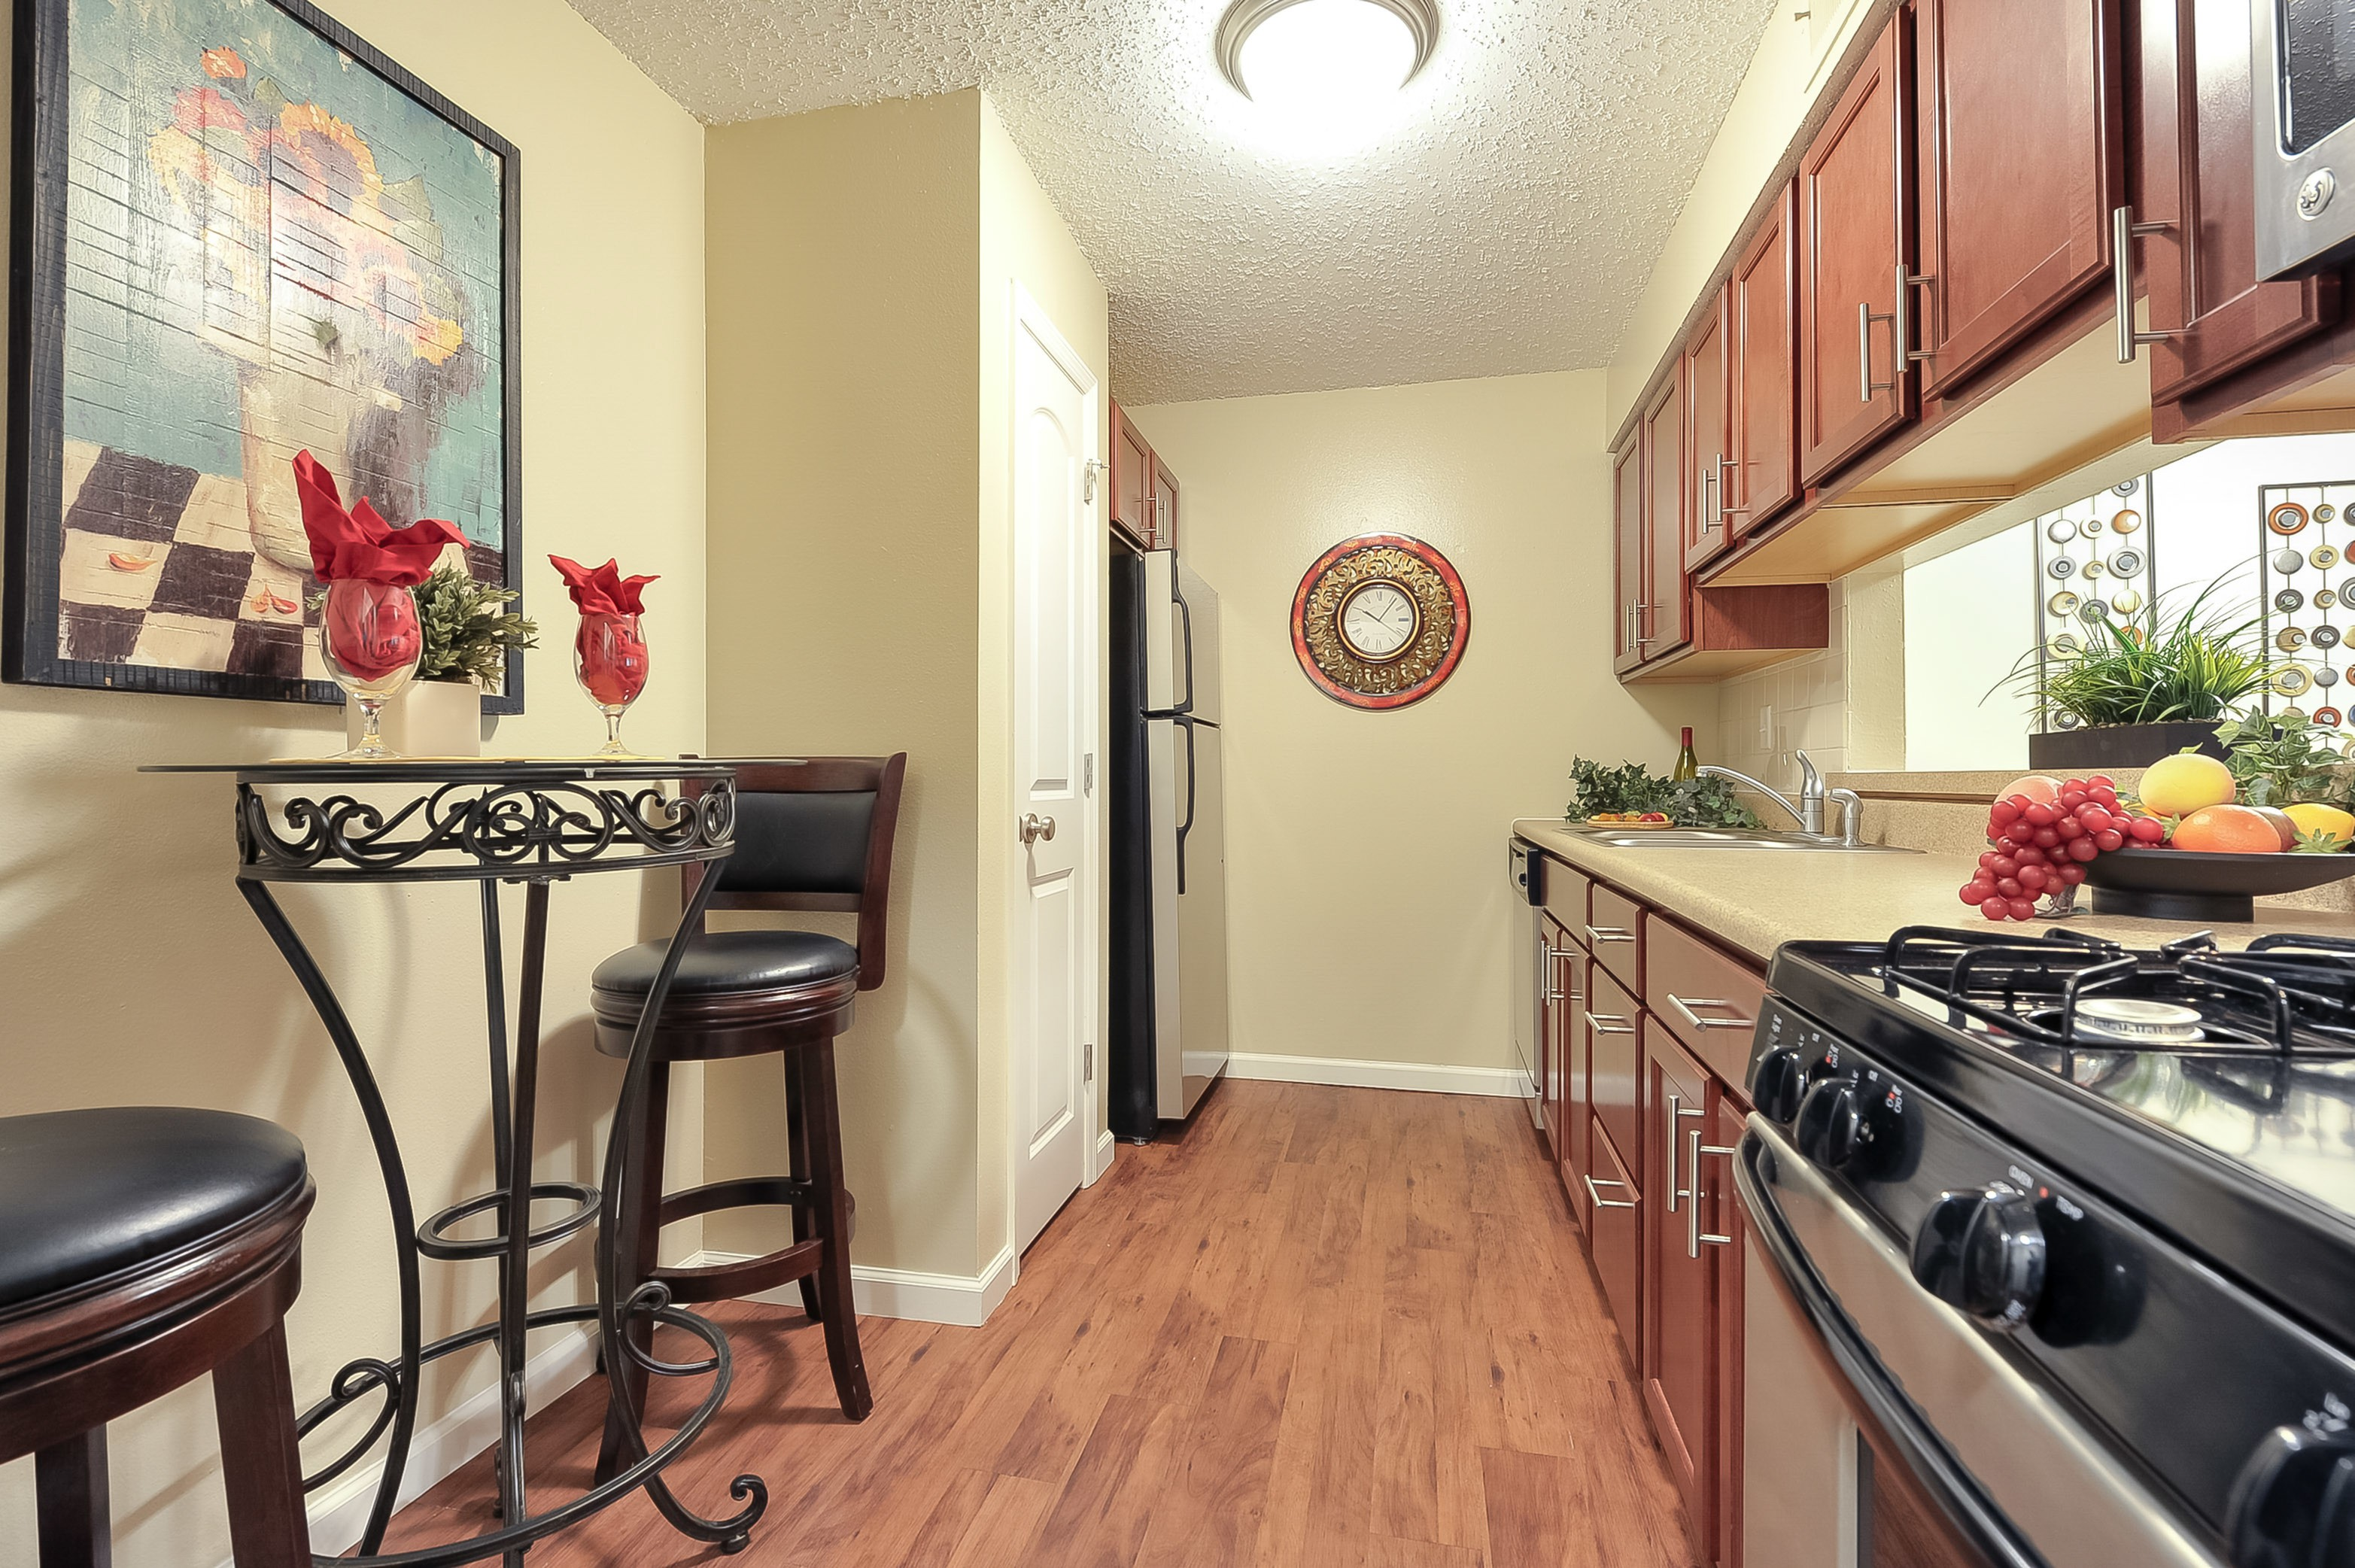 Apartments Near Chesterfield Chesterfield Place Apartments for Chesterfield Students in Chesterfield, MO